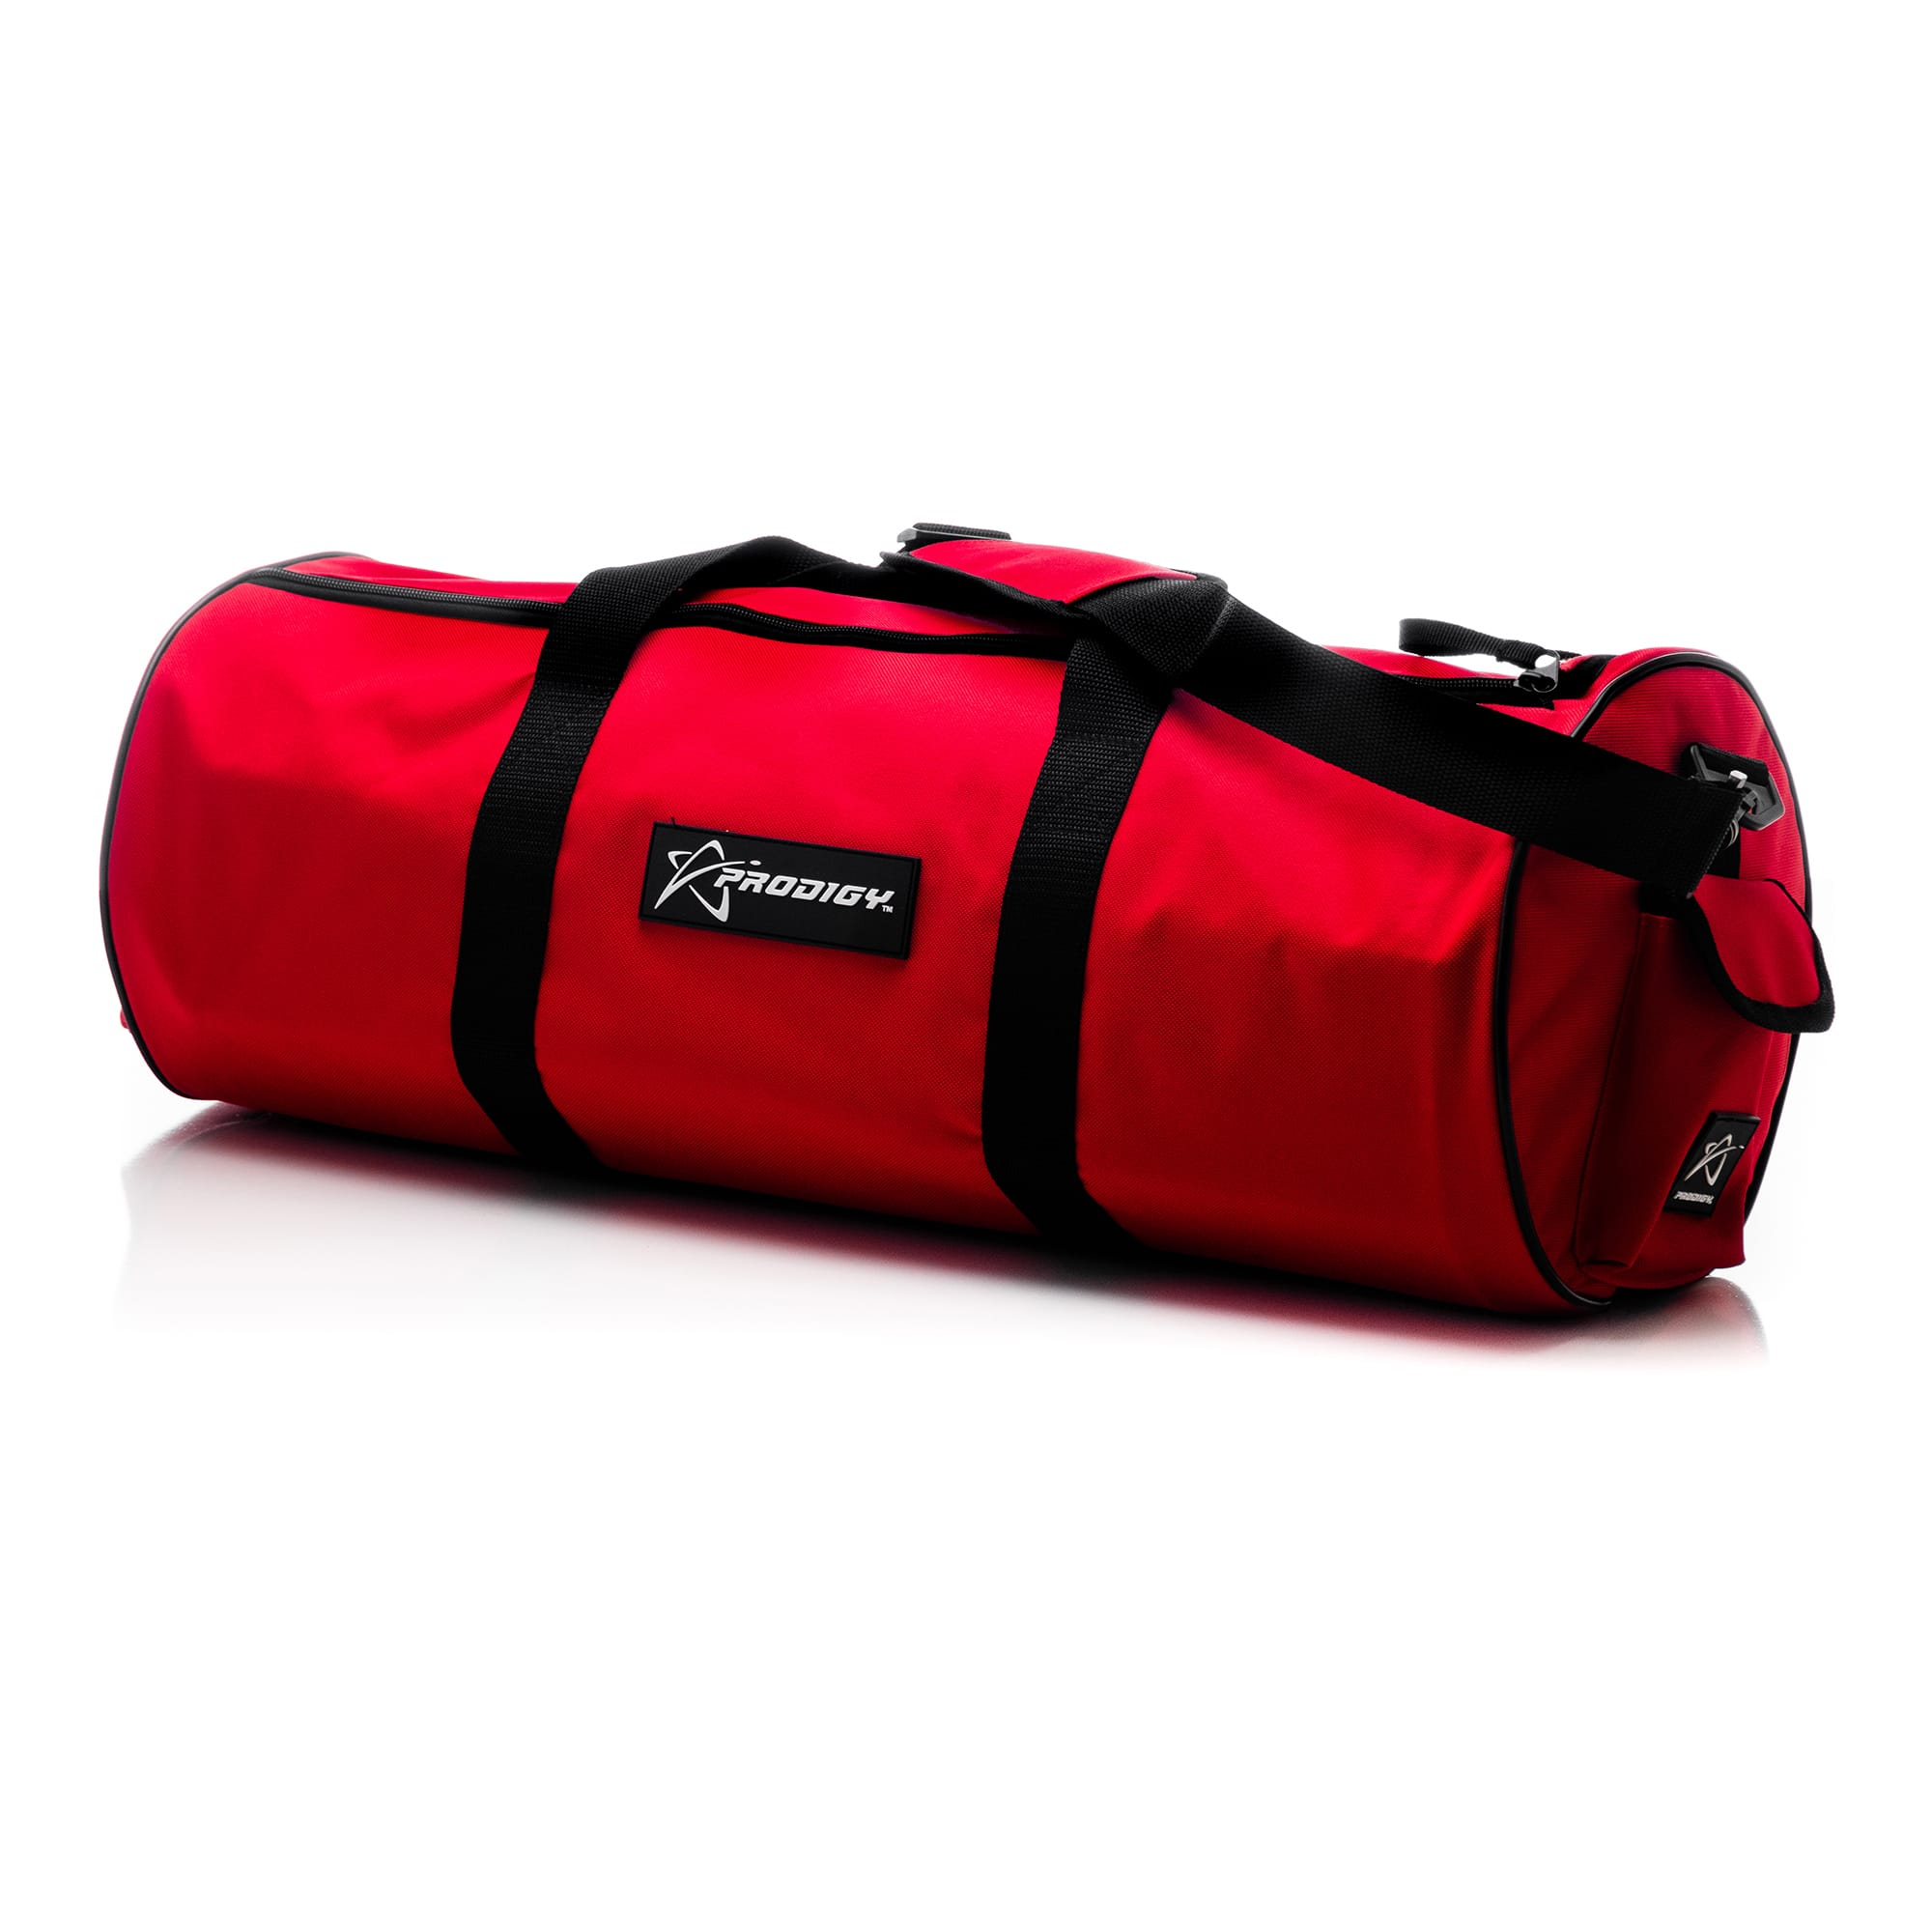 practice-bag-v2-red-front-closed_opt.jpg